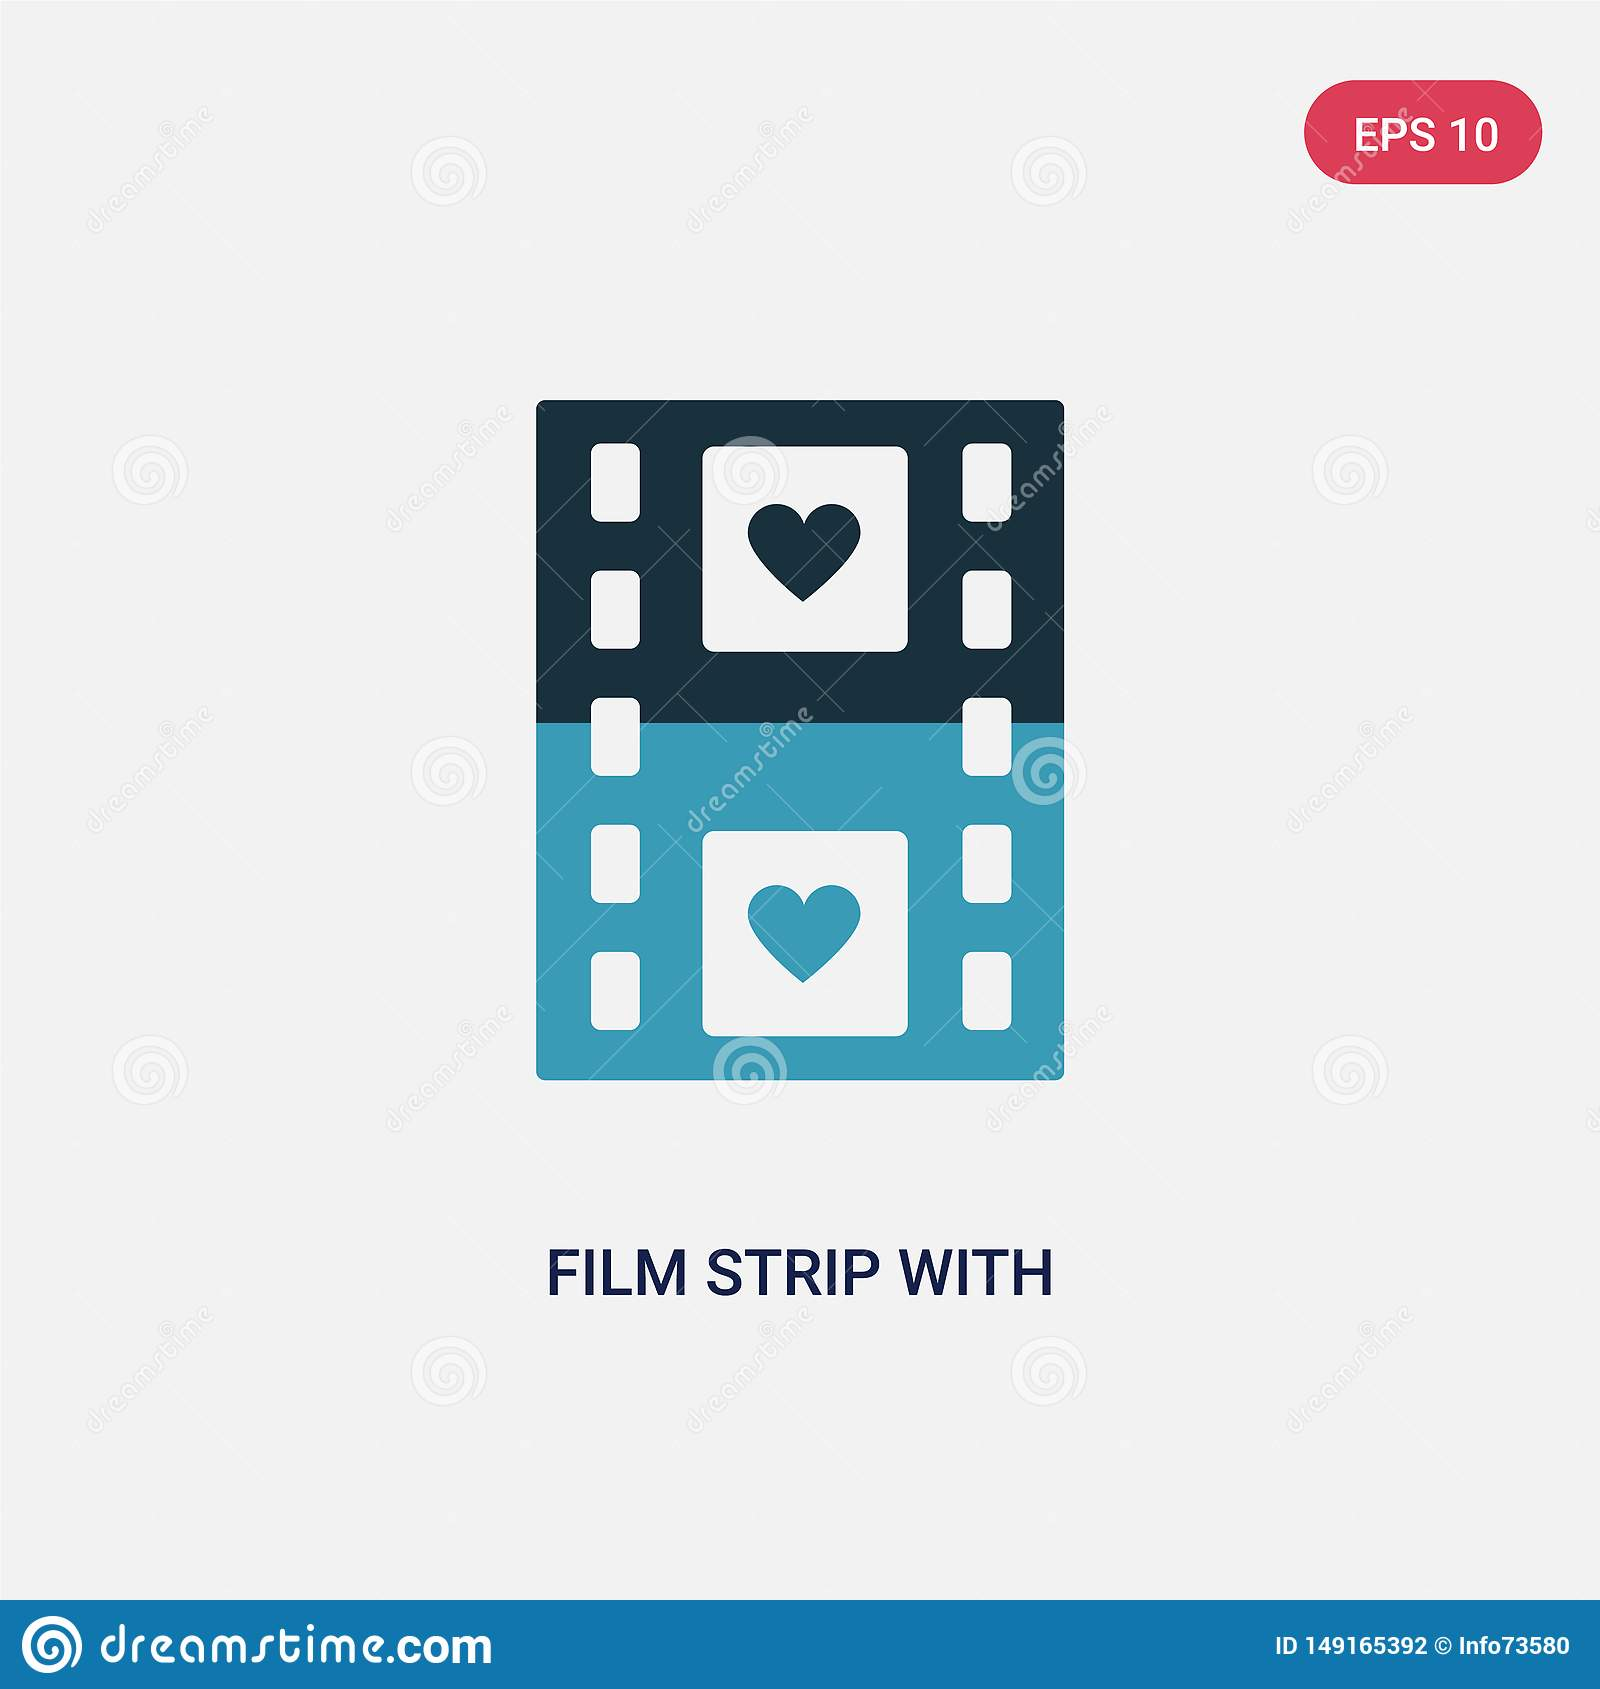 Two color film strip with heart vector icon from shapes concept. isolated blue film strip with heart vector sign symbol can be use